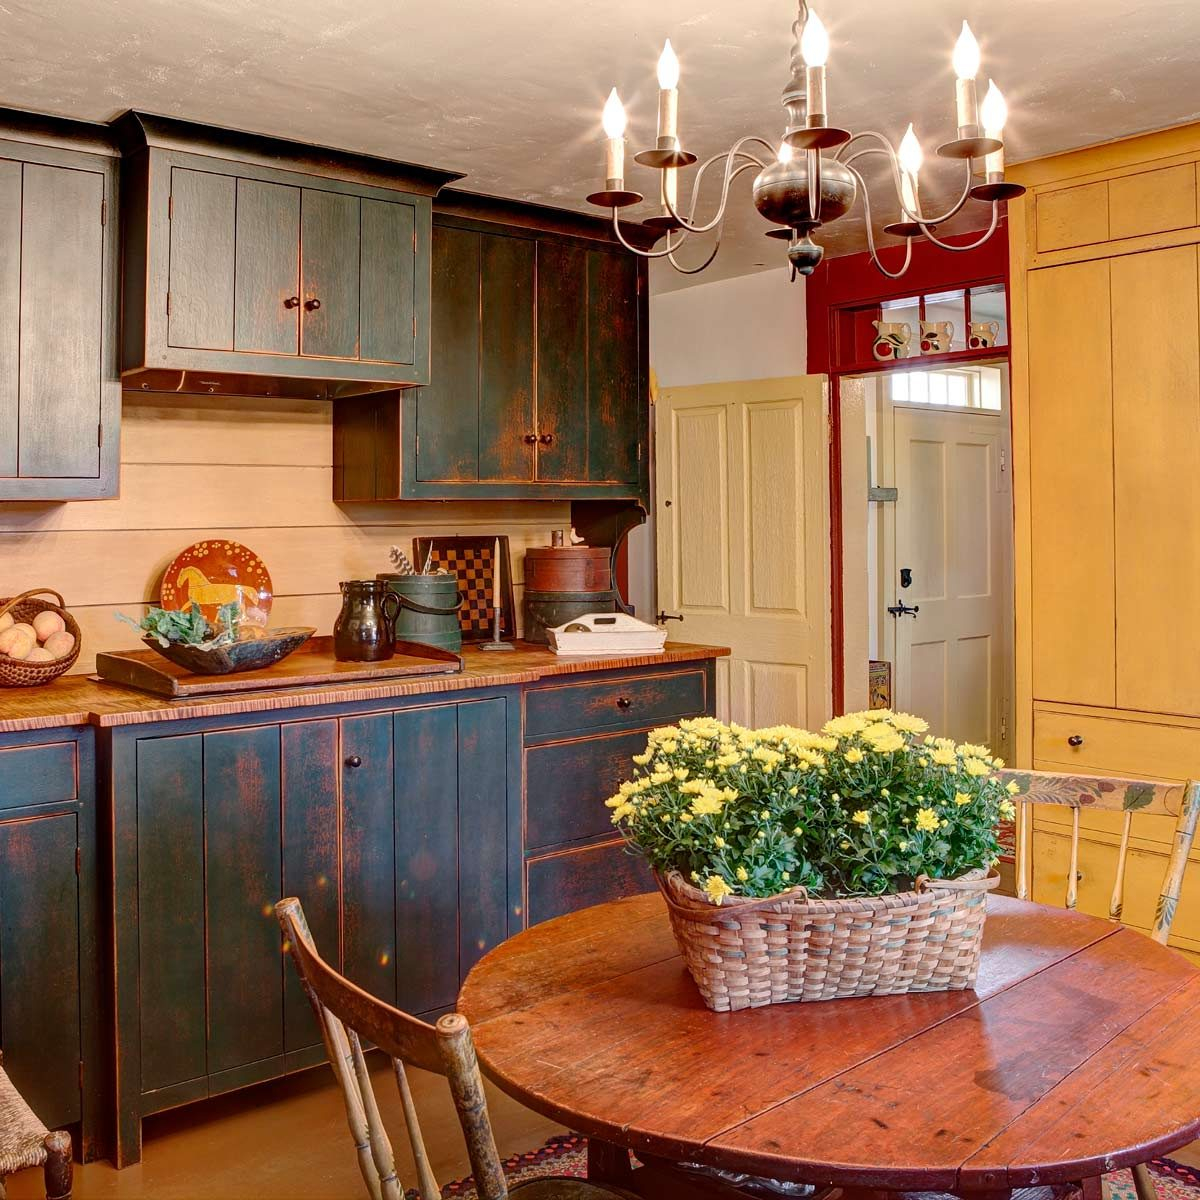 Antique Painted Cabinets Tips And Techniques To Try At